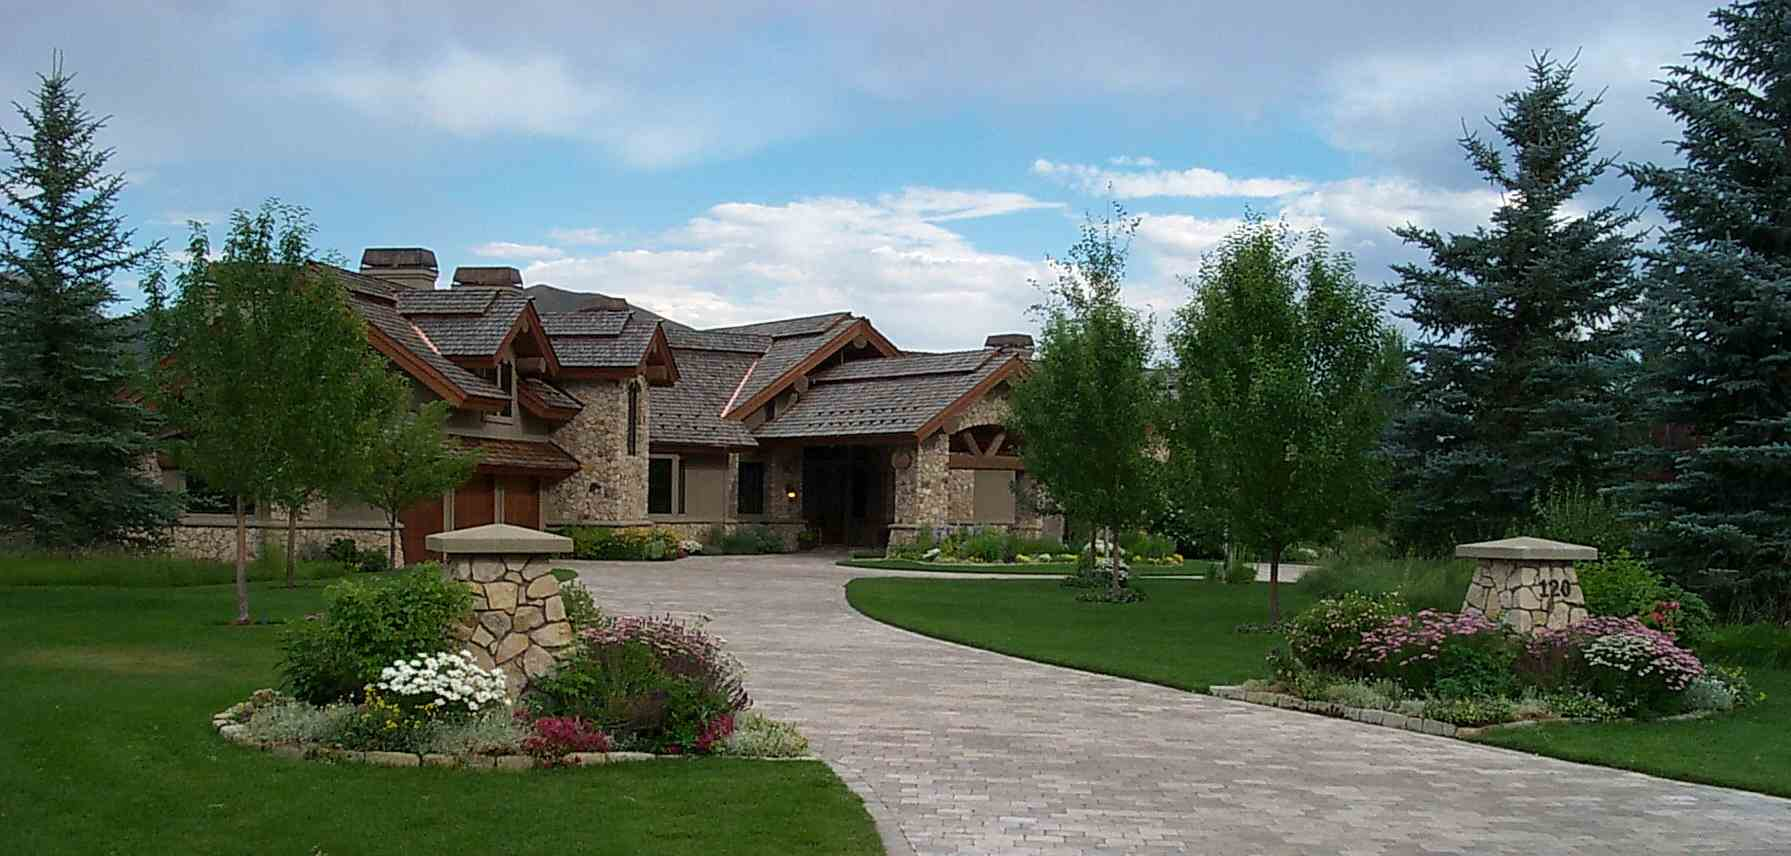 Single Family Home for Sale at Quiet Location 120 Eagle Lake Drive Sun Valley, Idaho 83353 United States